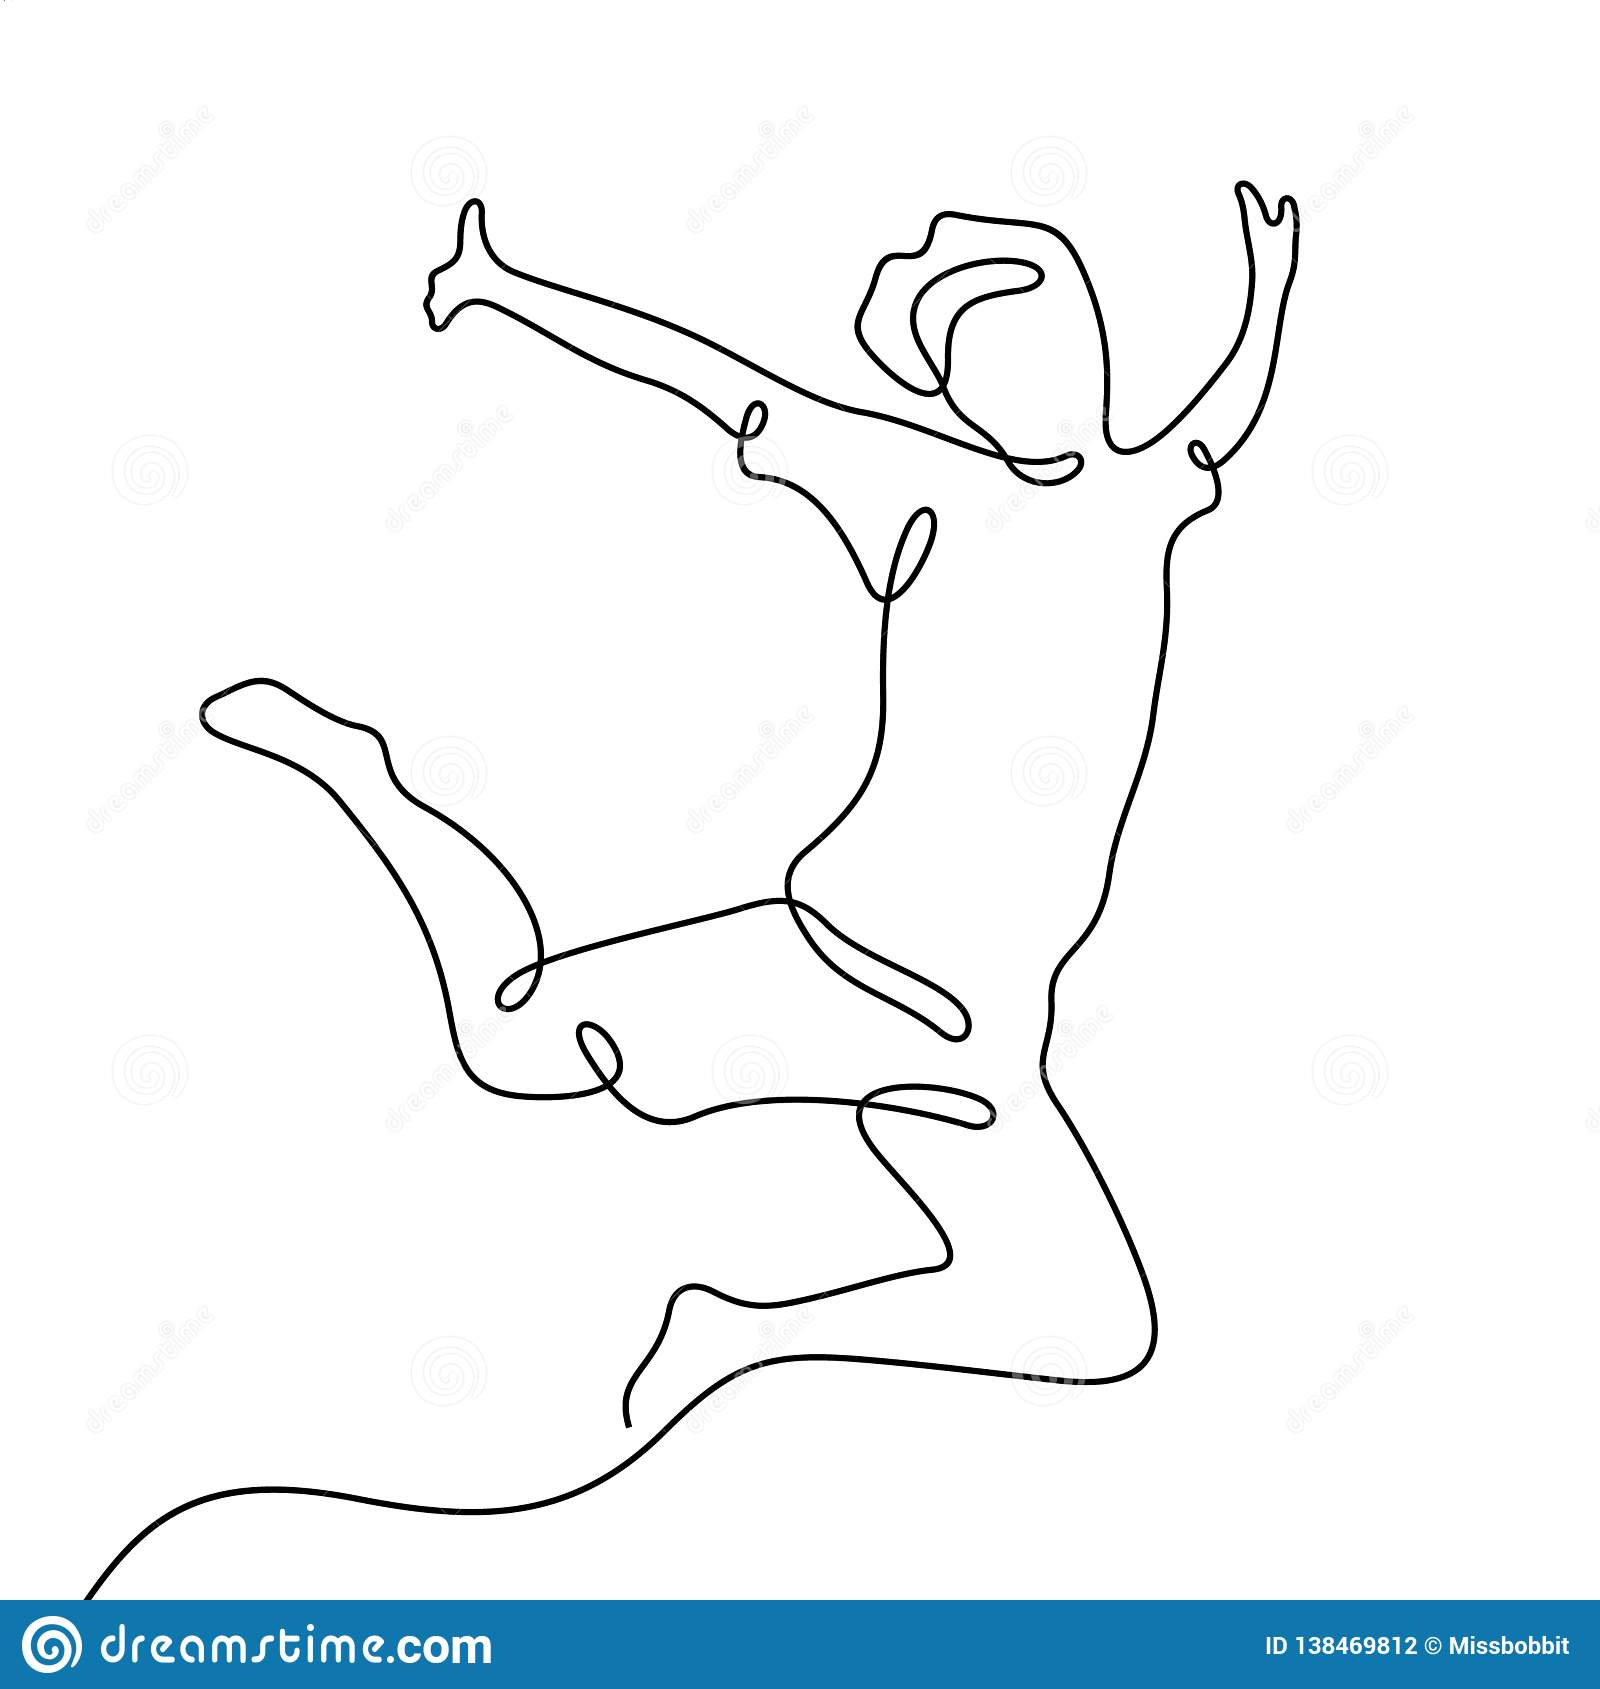 Man in motion artistic one line vector sketch graphic black on white